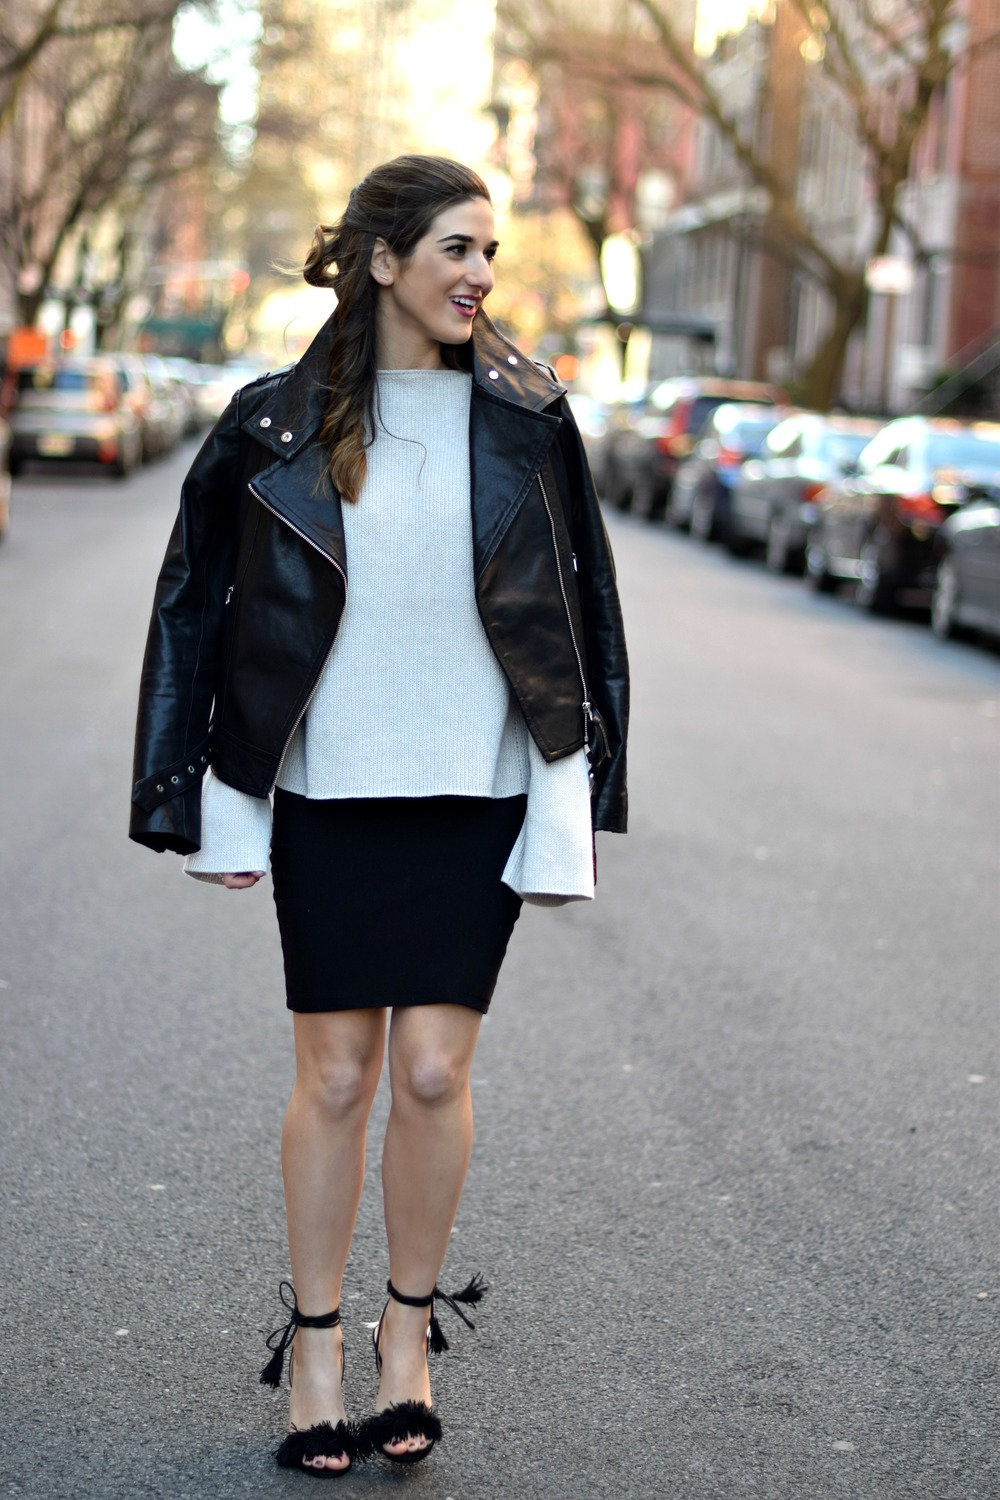 Ivanka Trump Fringe Sandals Mackage Moto Jacket Louboutins & Love Fashion  Blog Esther Santer NYC Street